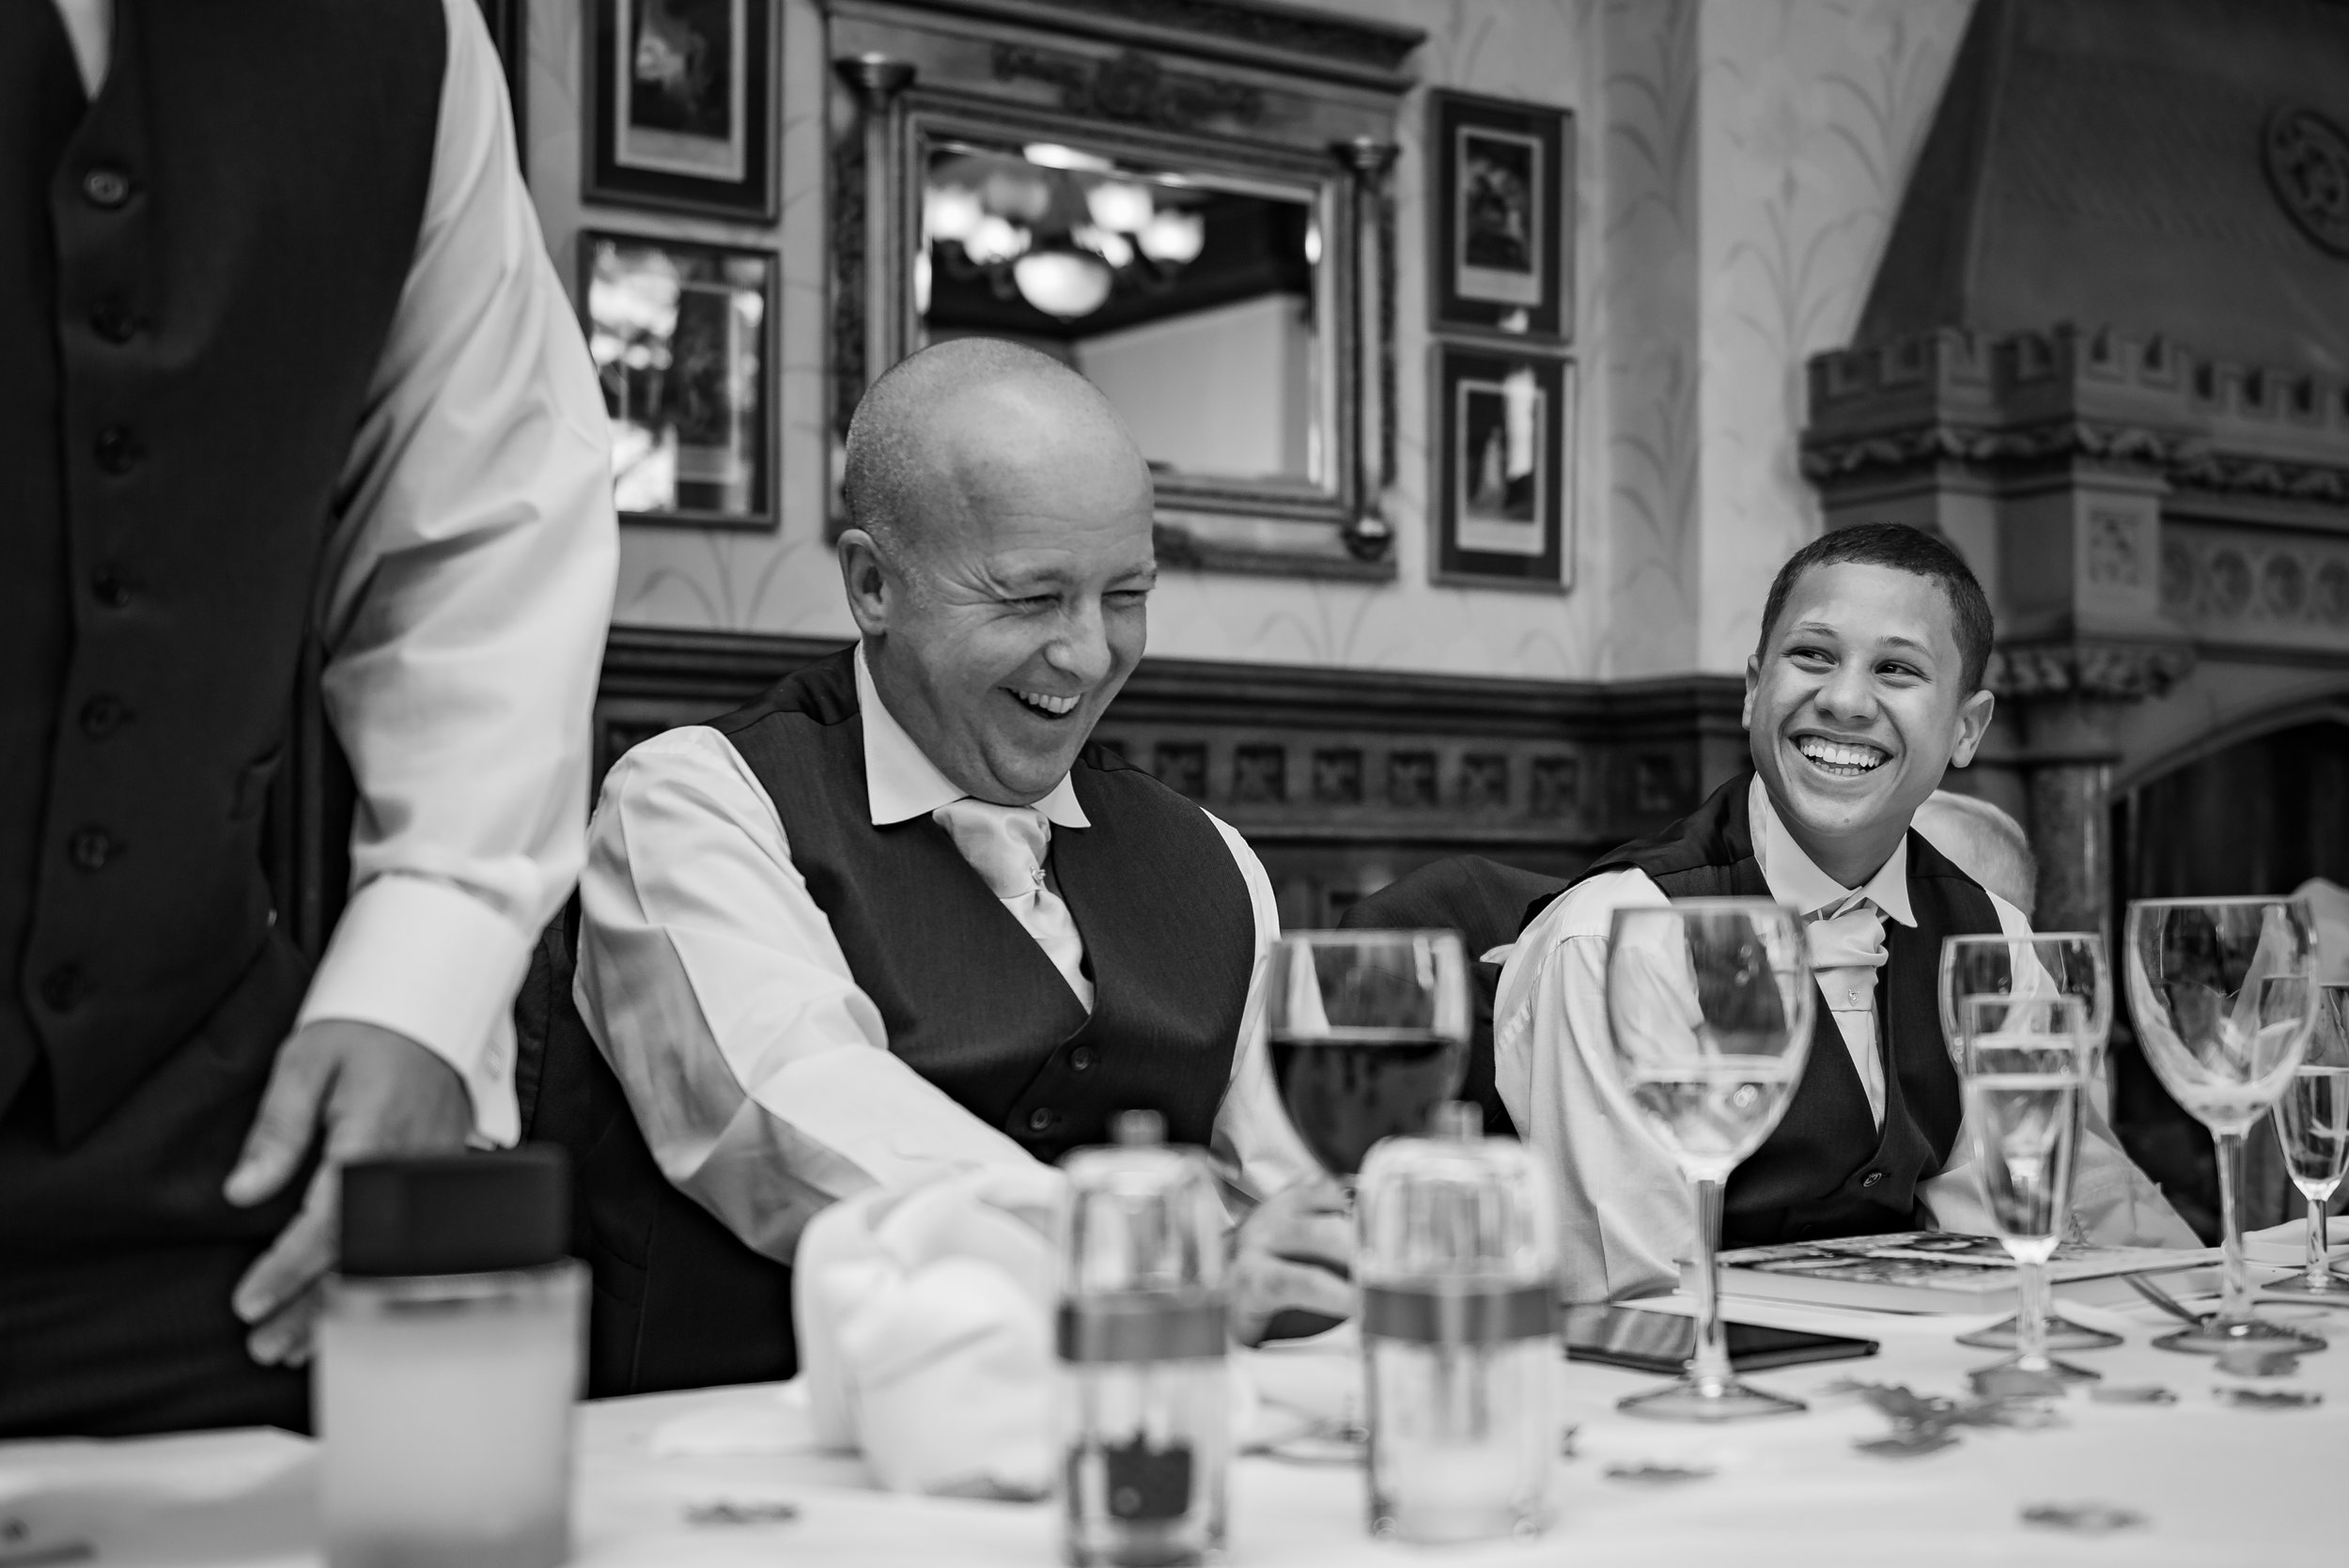 hilarious speeches wroxhall abbey black and white wedding photography